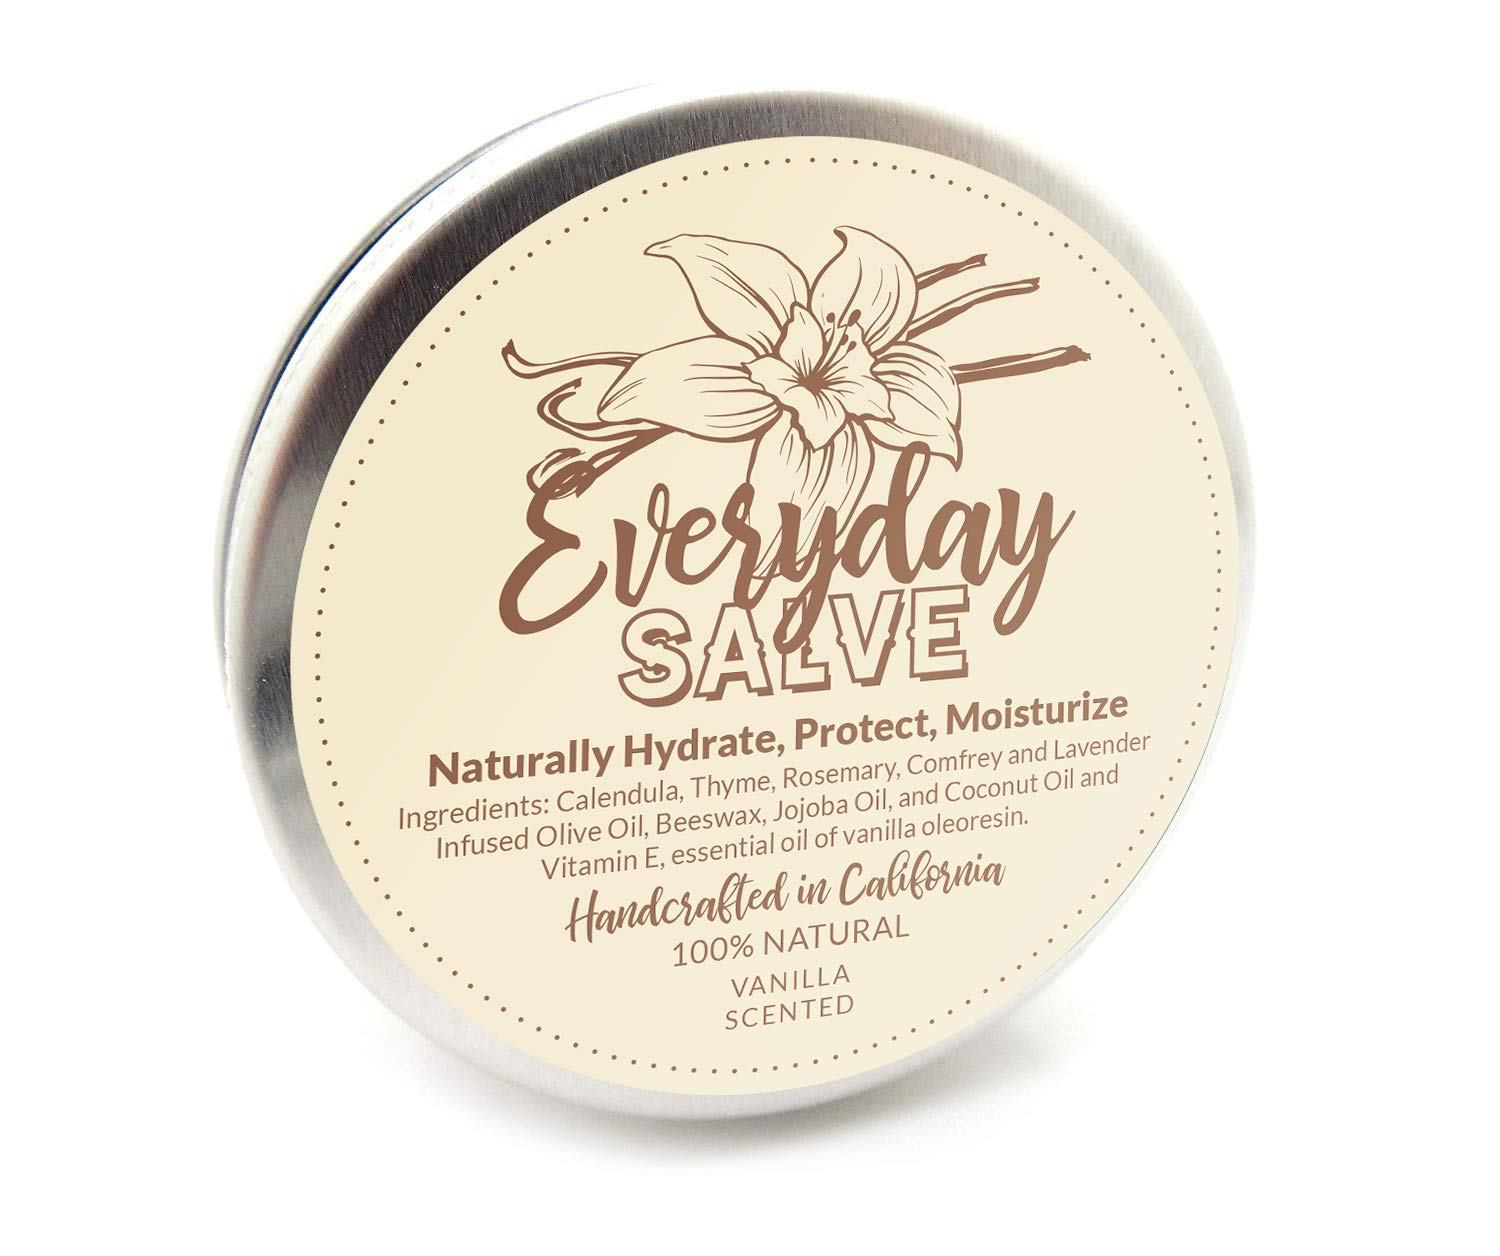 Vanilla Scented All Purpose Salve | All Natural Organic Salve By Everyday Salves | Vanilla Balm Which Moisturizes, Calms Dry & Irritated Skin ● Protect & Prevent Cracked Heels, Cuticles & Nails and Lip Balm – 2oz